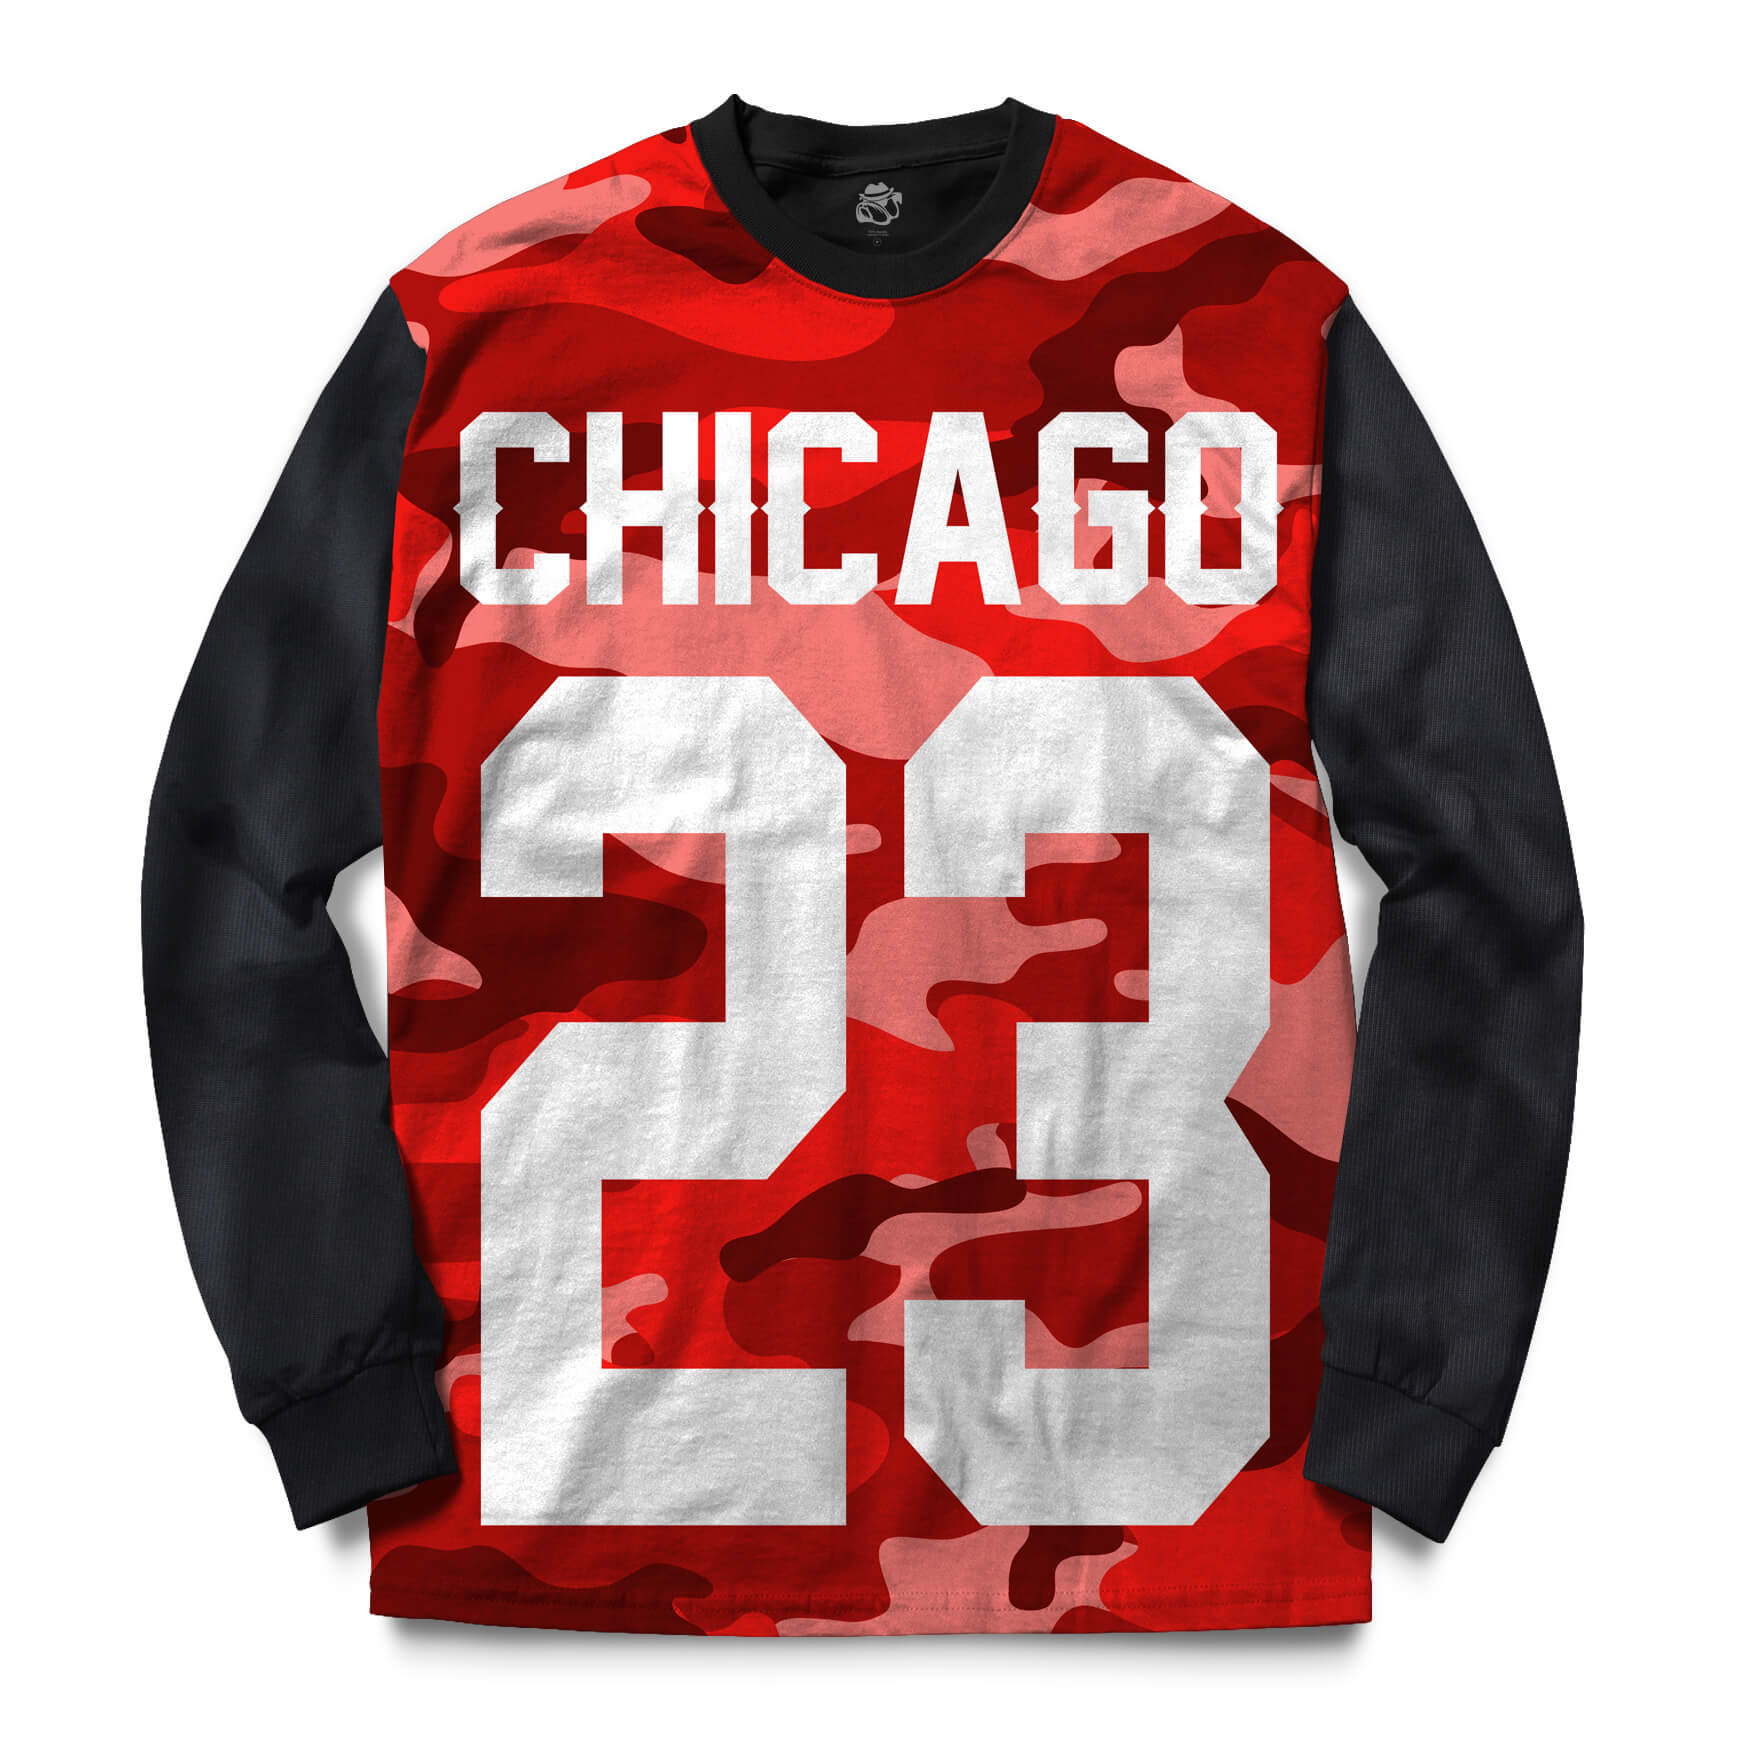 Blusa BSC Chicago 23 Red Camo Sublimada Preto